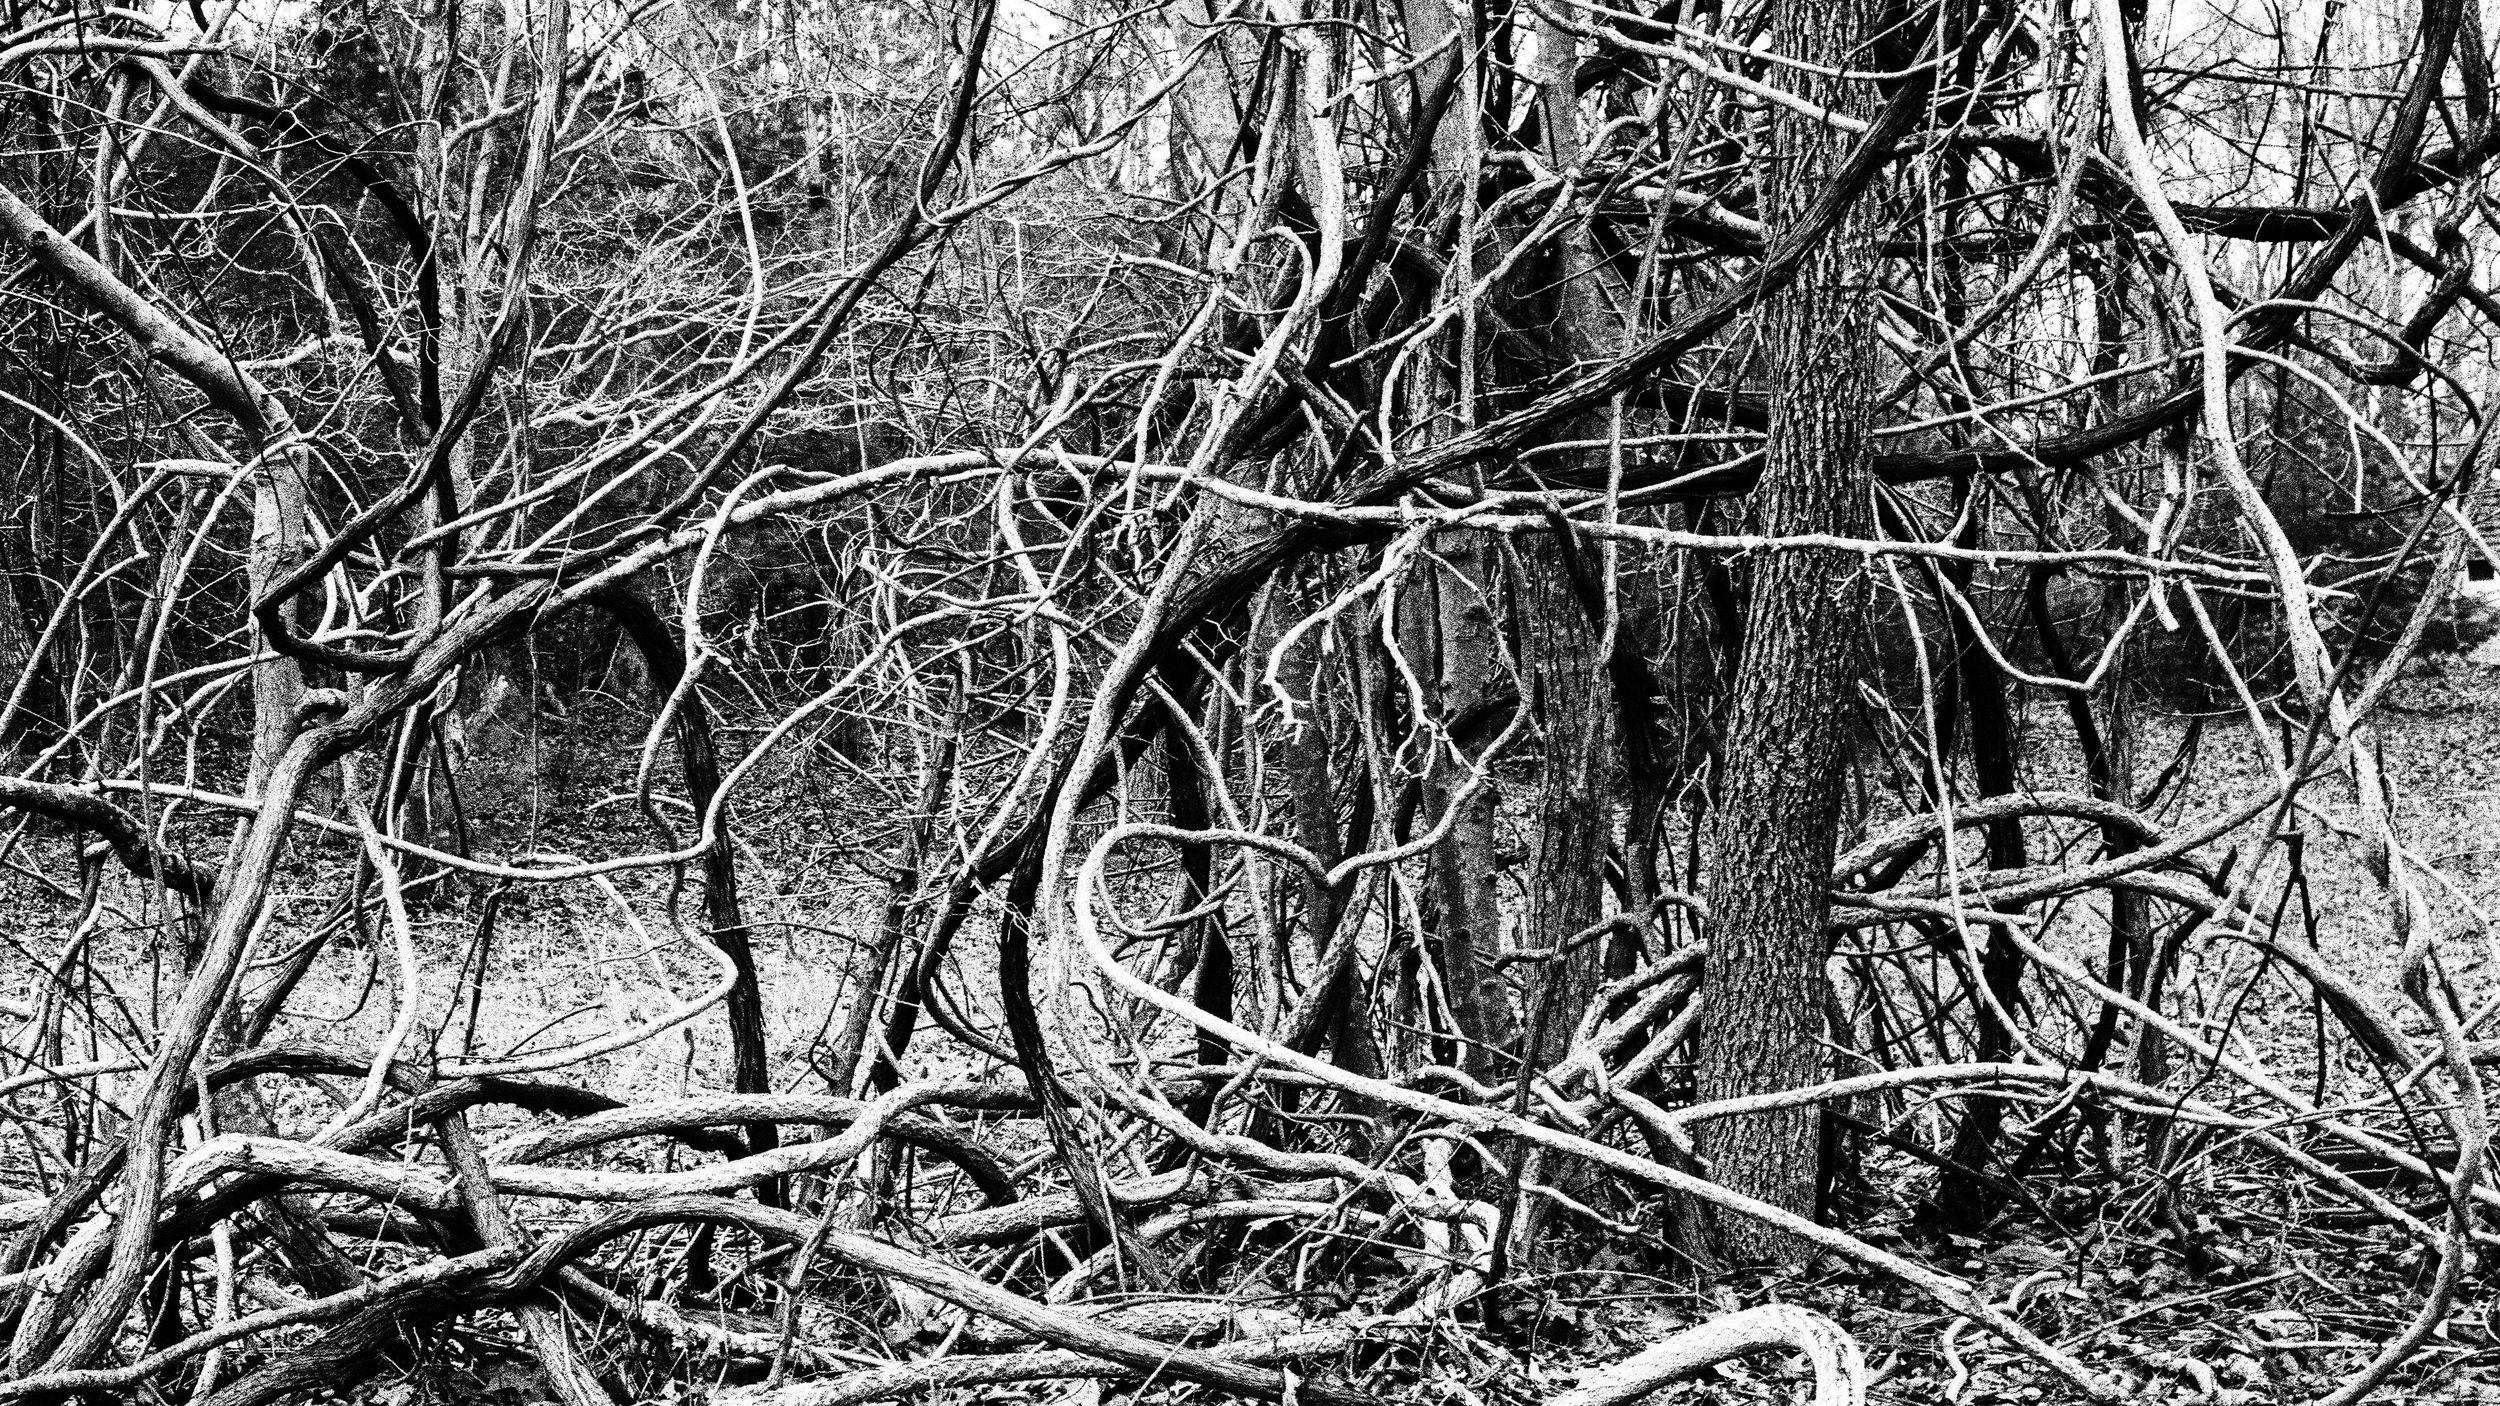 intertwined vines and the texture of trees | hasselblad | xpan cinestill xx | keith mendenhall